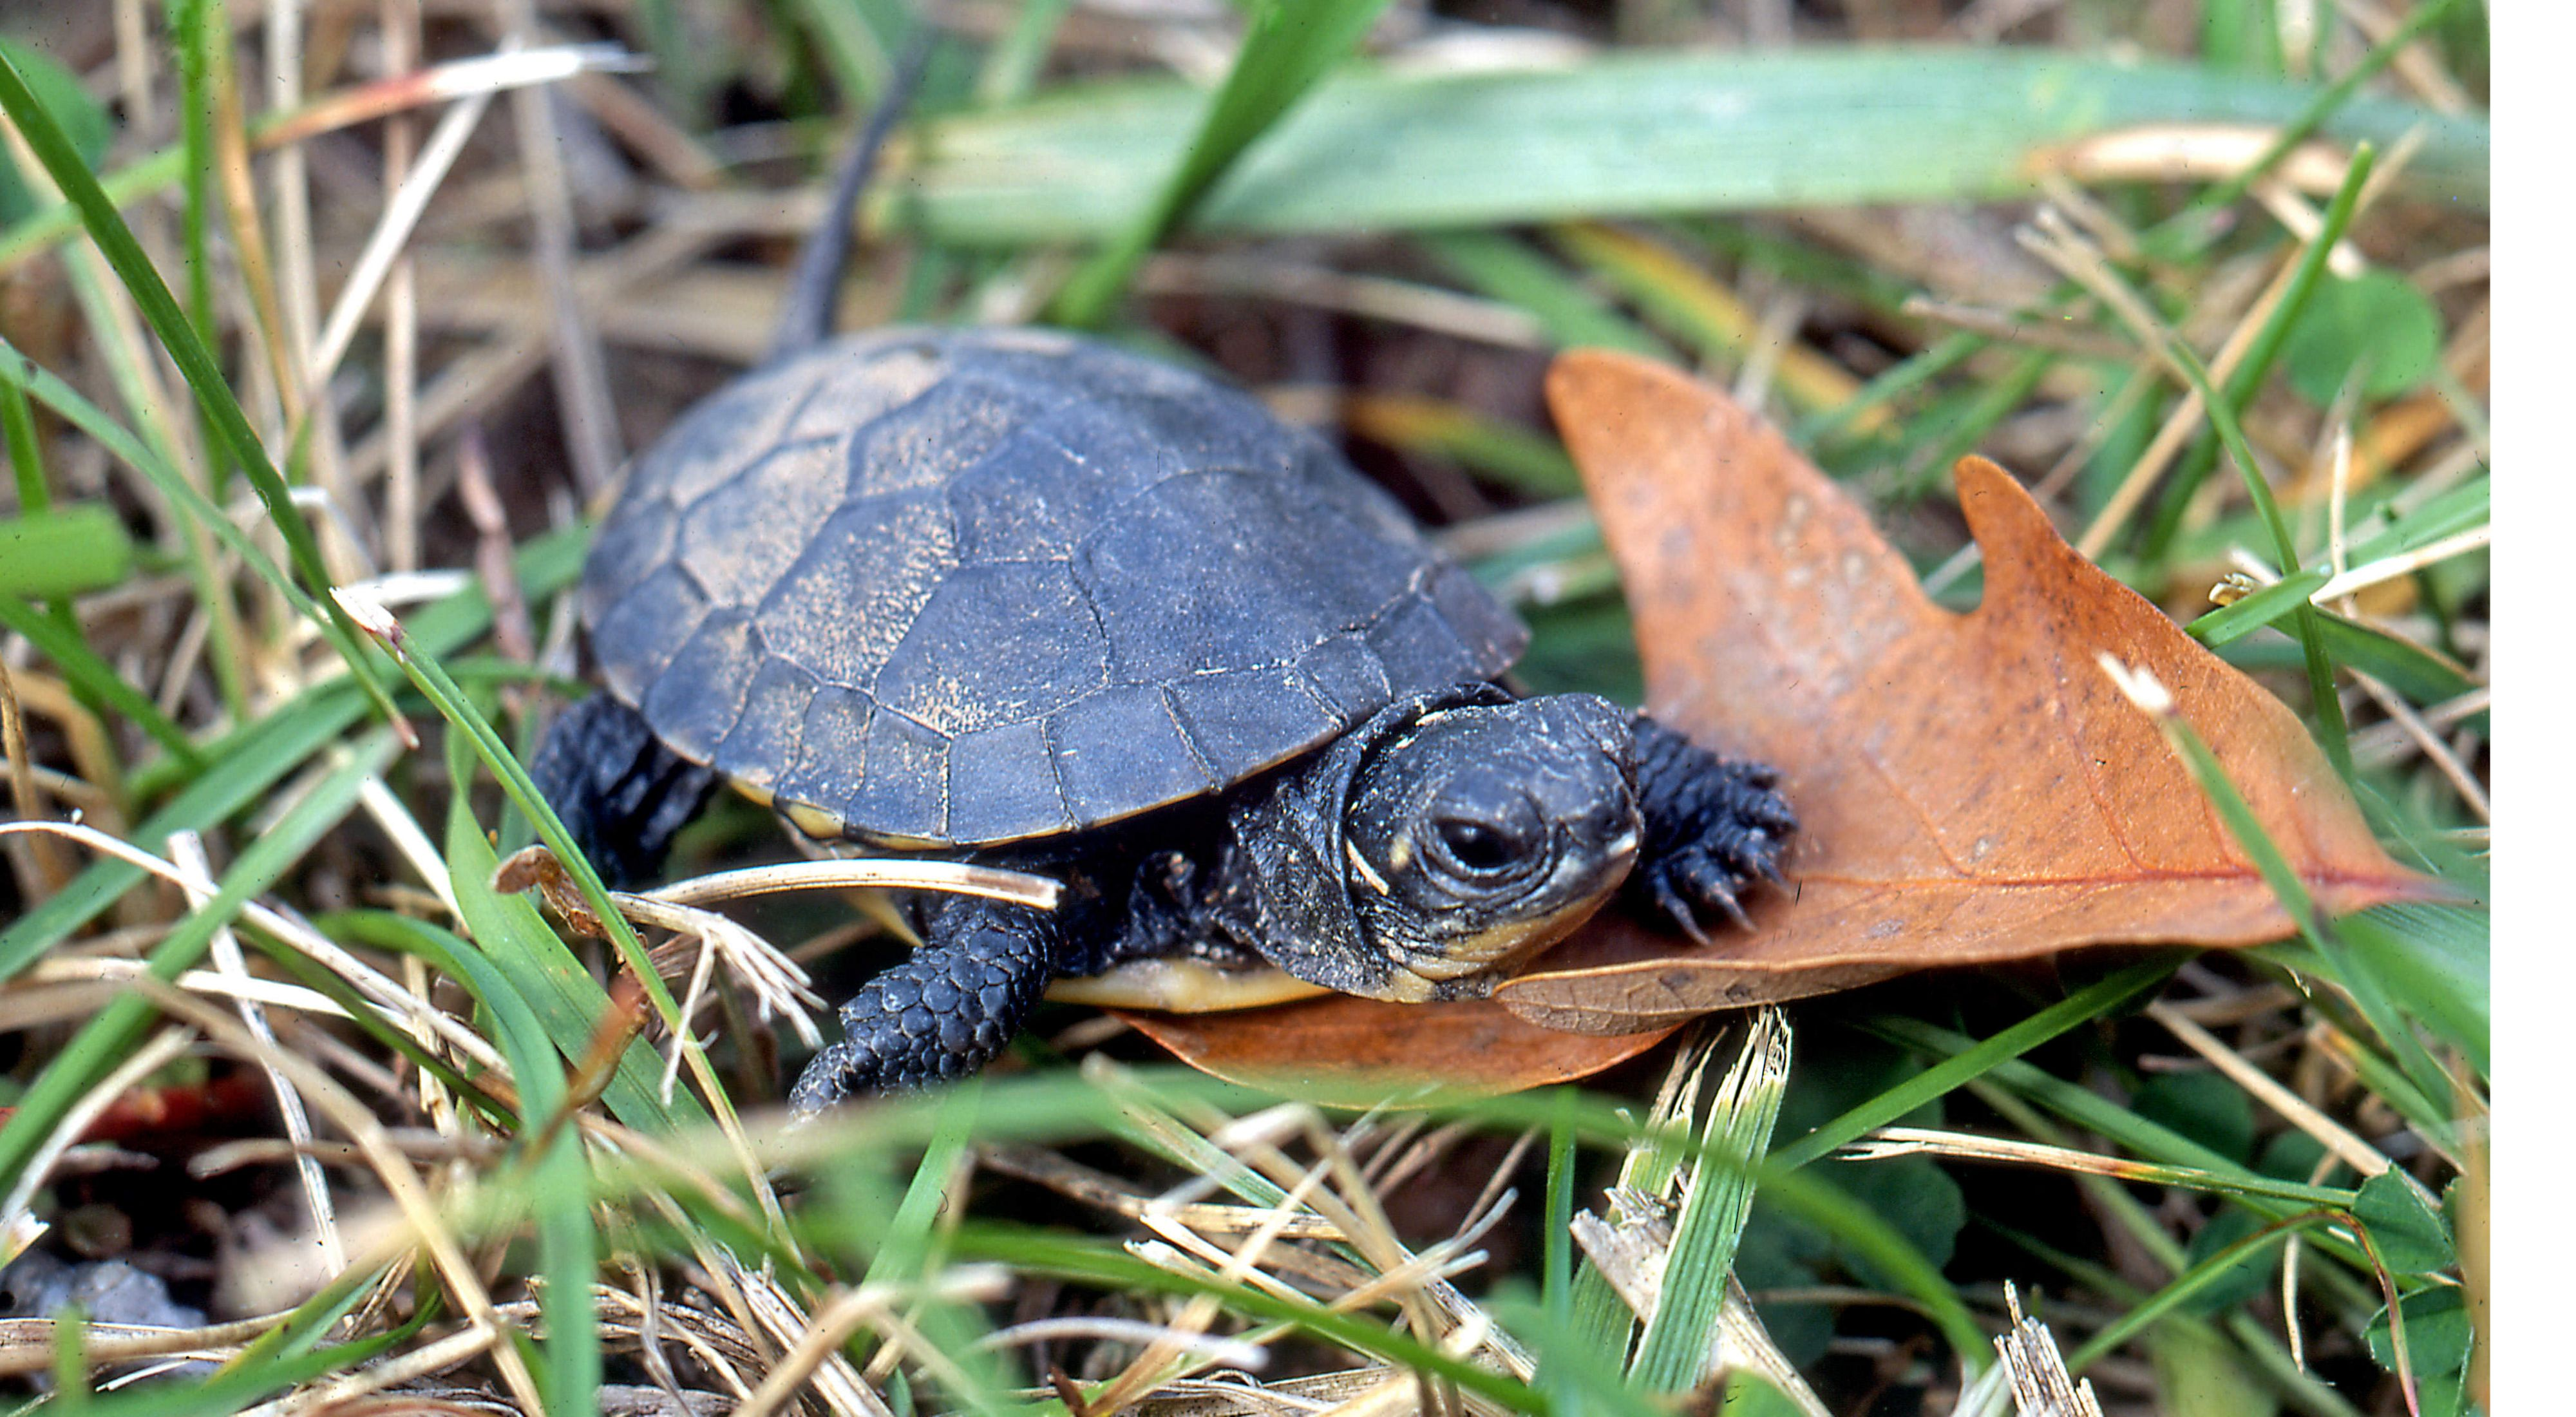 a small dark turtle on leaf surrounded by green grass.